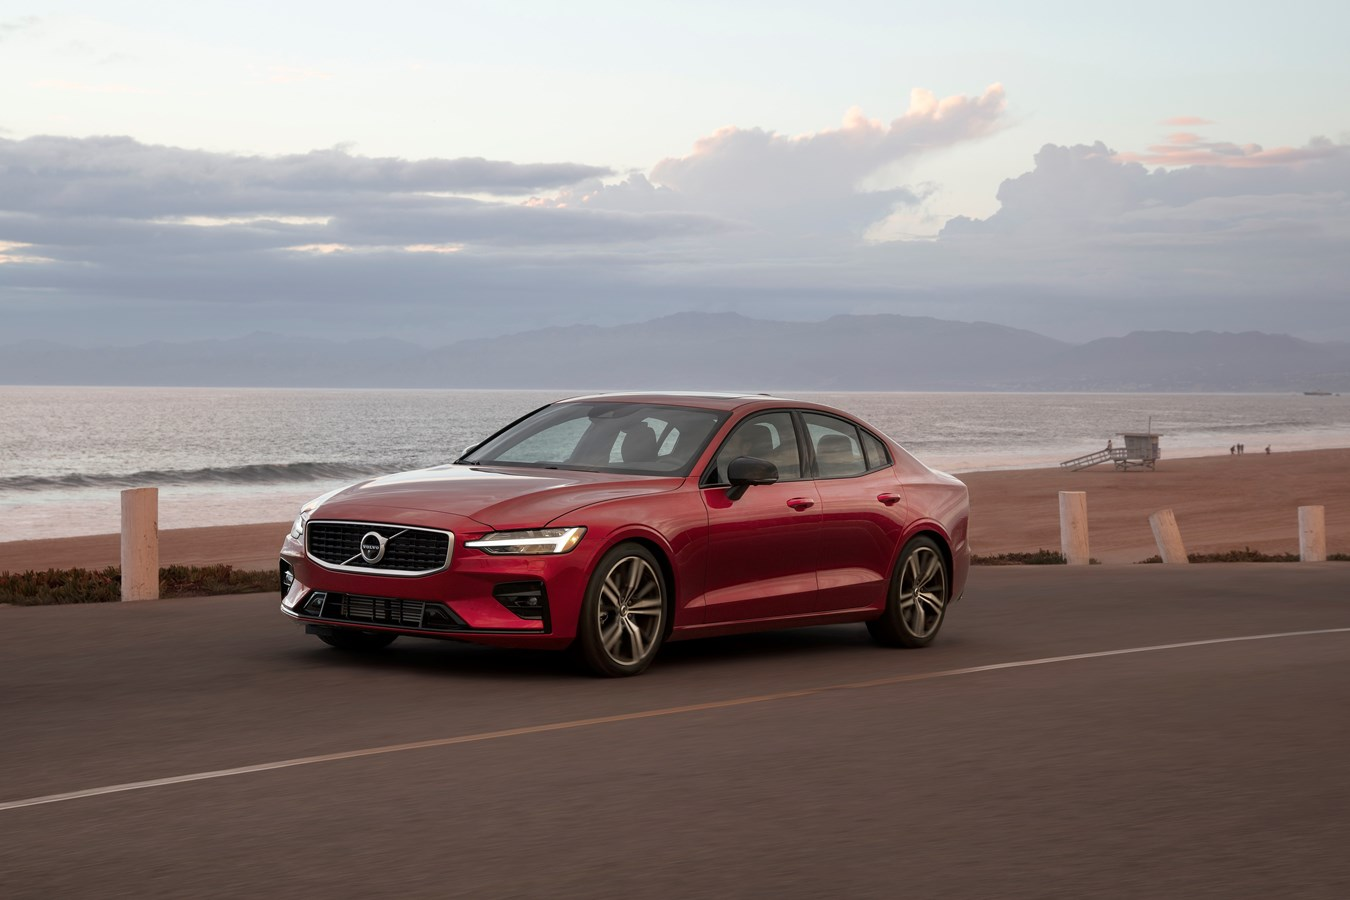 Volvo Cars to impose 180 kph speed limit on all cars to